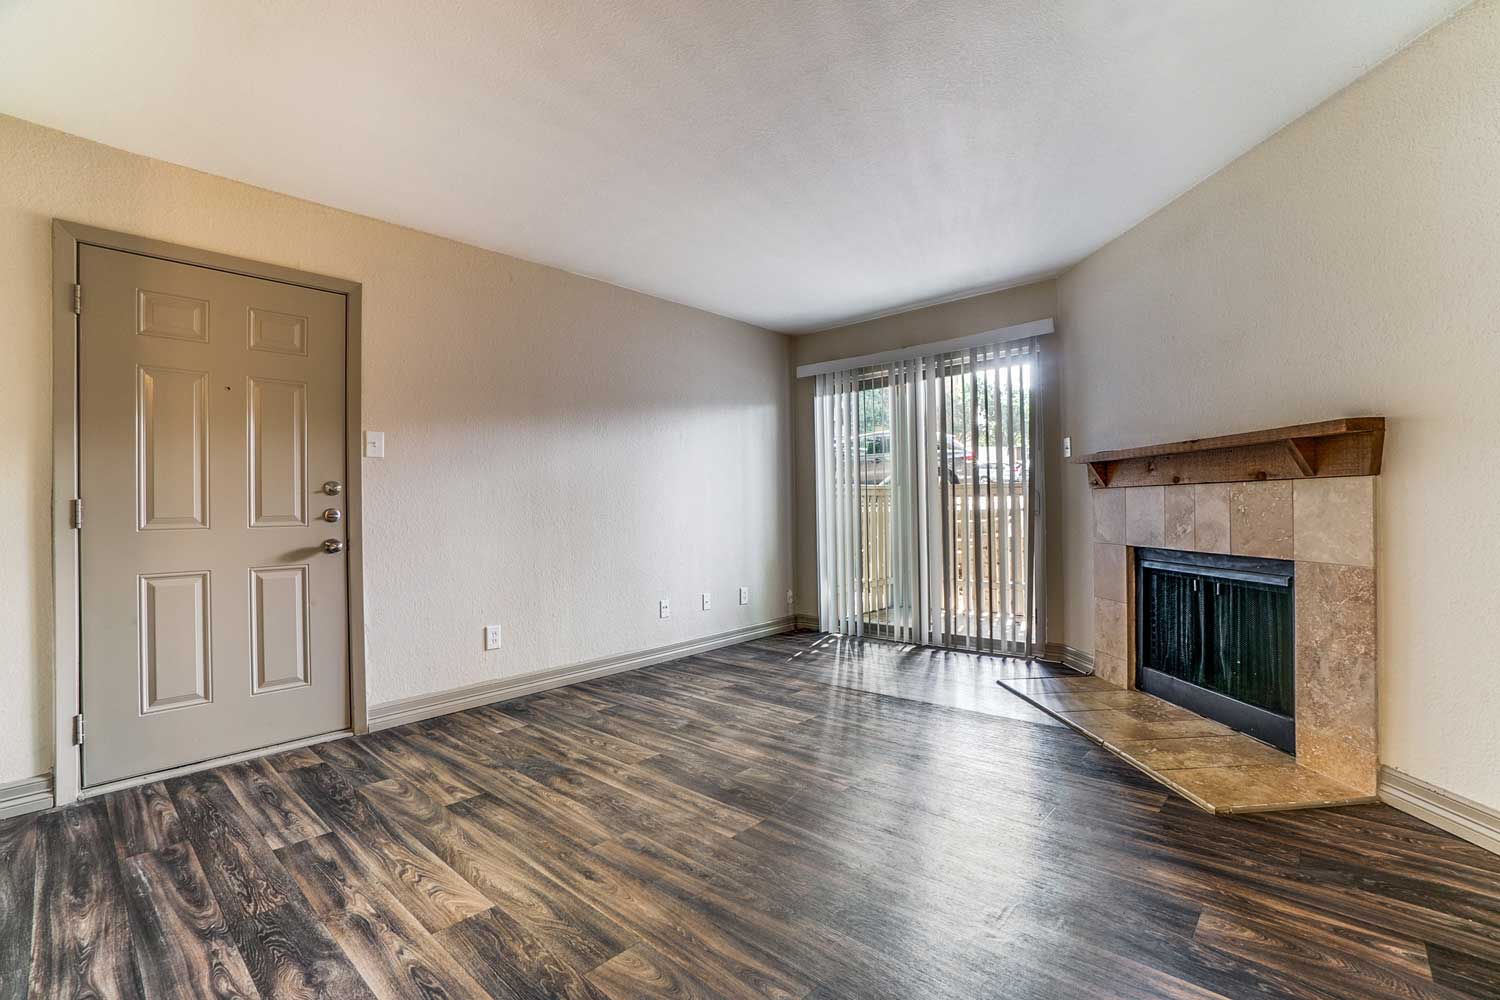 Fire Place at Riviera Apartments in Dallas, Texas